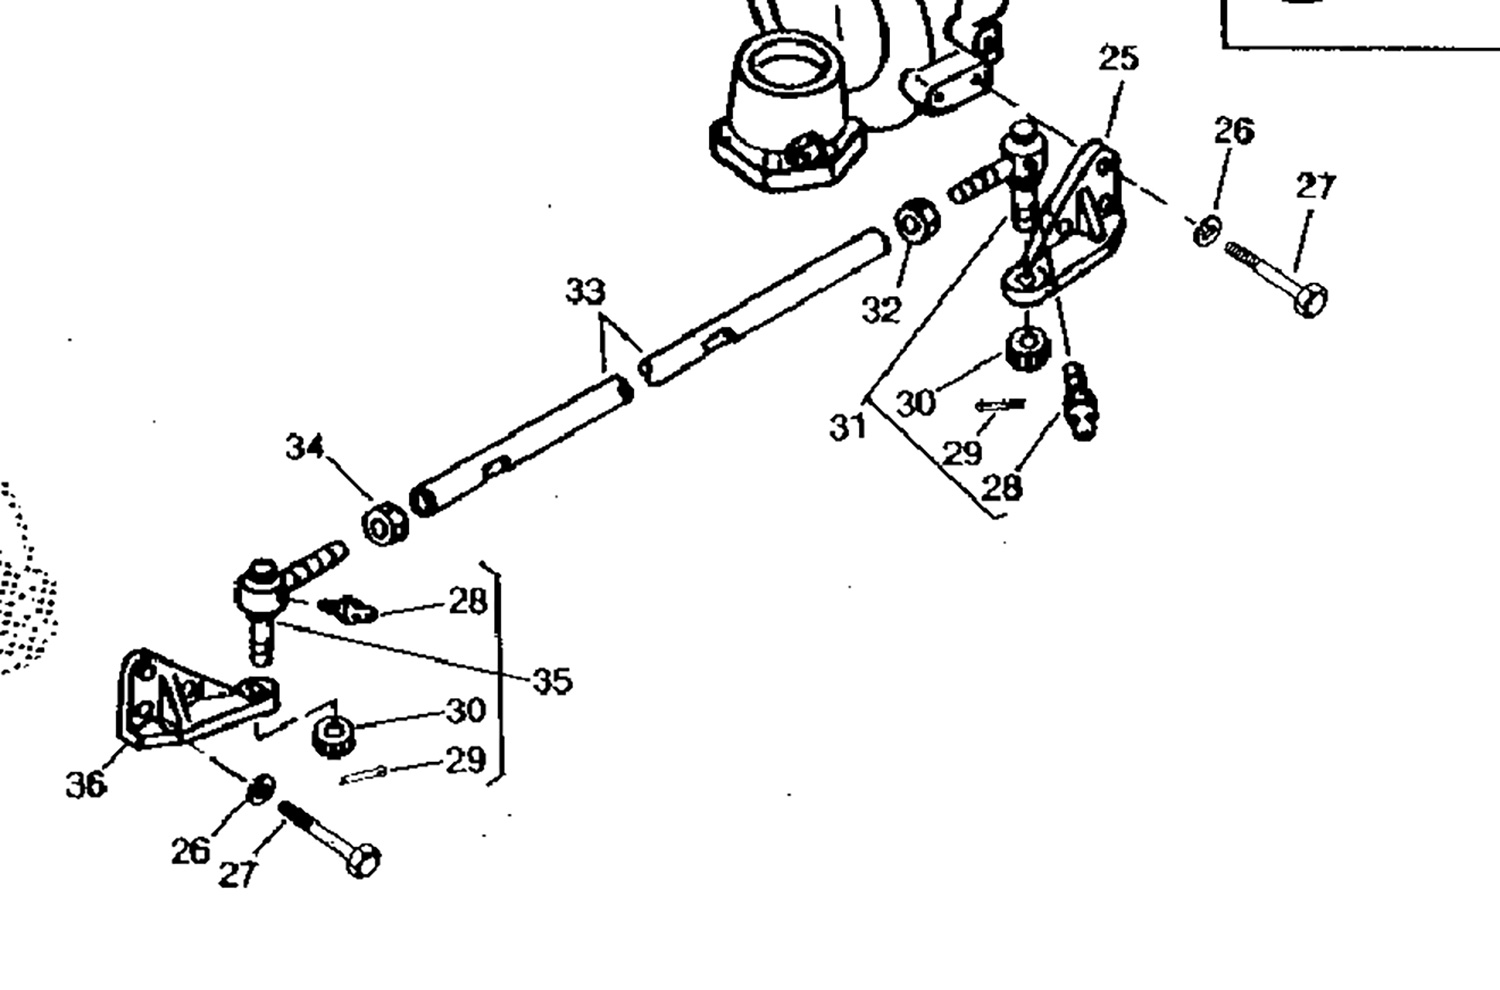 Buy Your Compact Tractor Parts Online Weavers John Deere 950 Wiring Diagram On 790 Tie Rod End Rh Thread For Lh Side